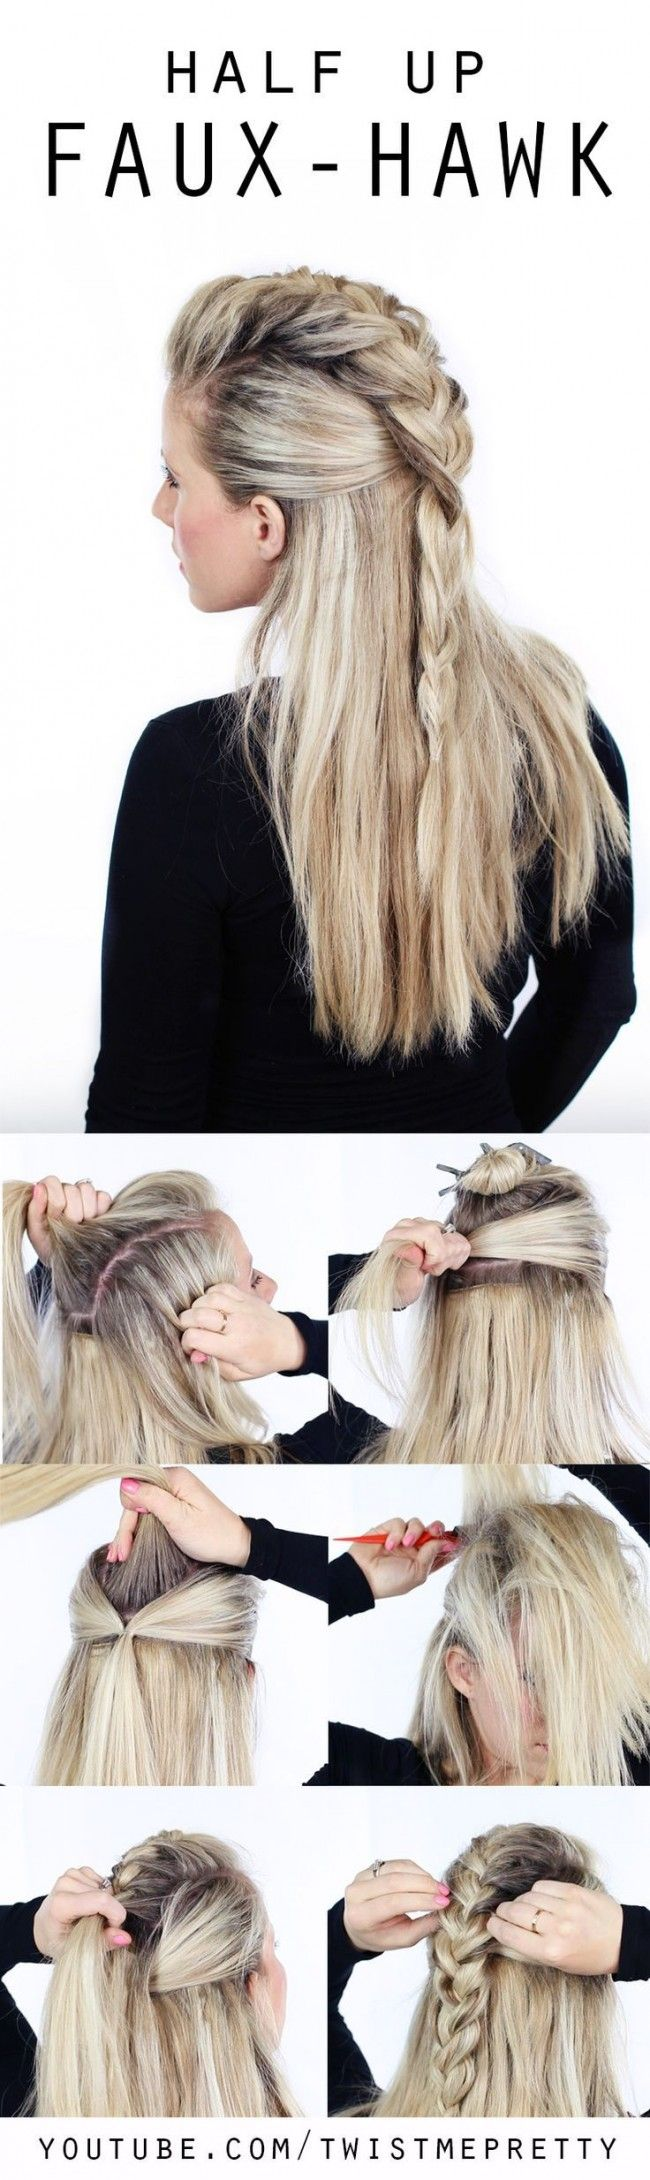 How to Tame Your Hair: Summer Hair Tutorials | Pretty Designs #how